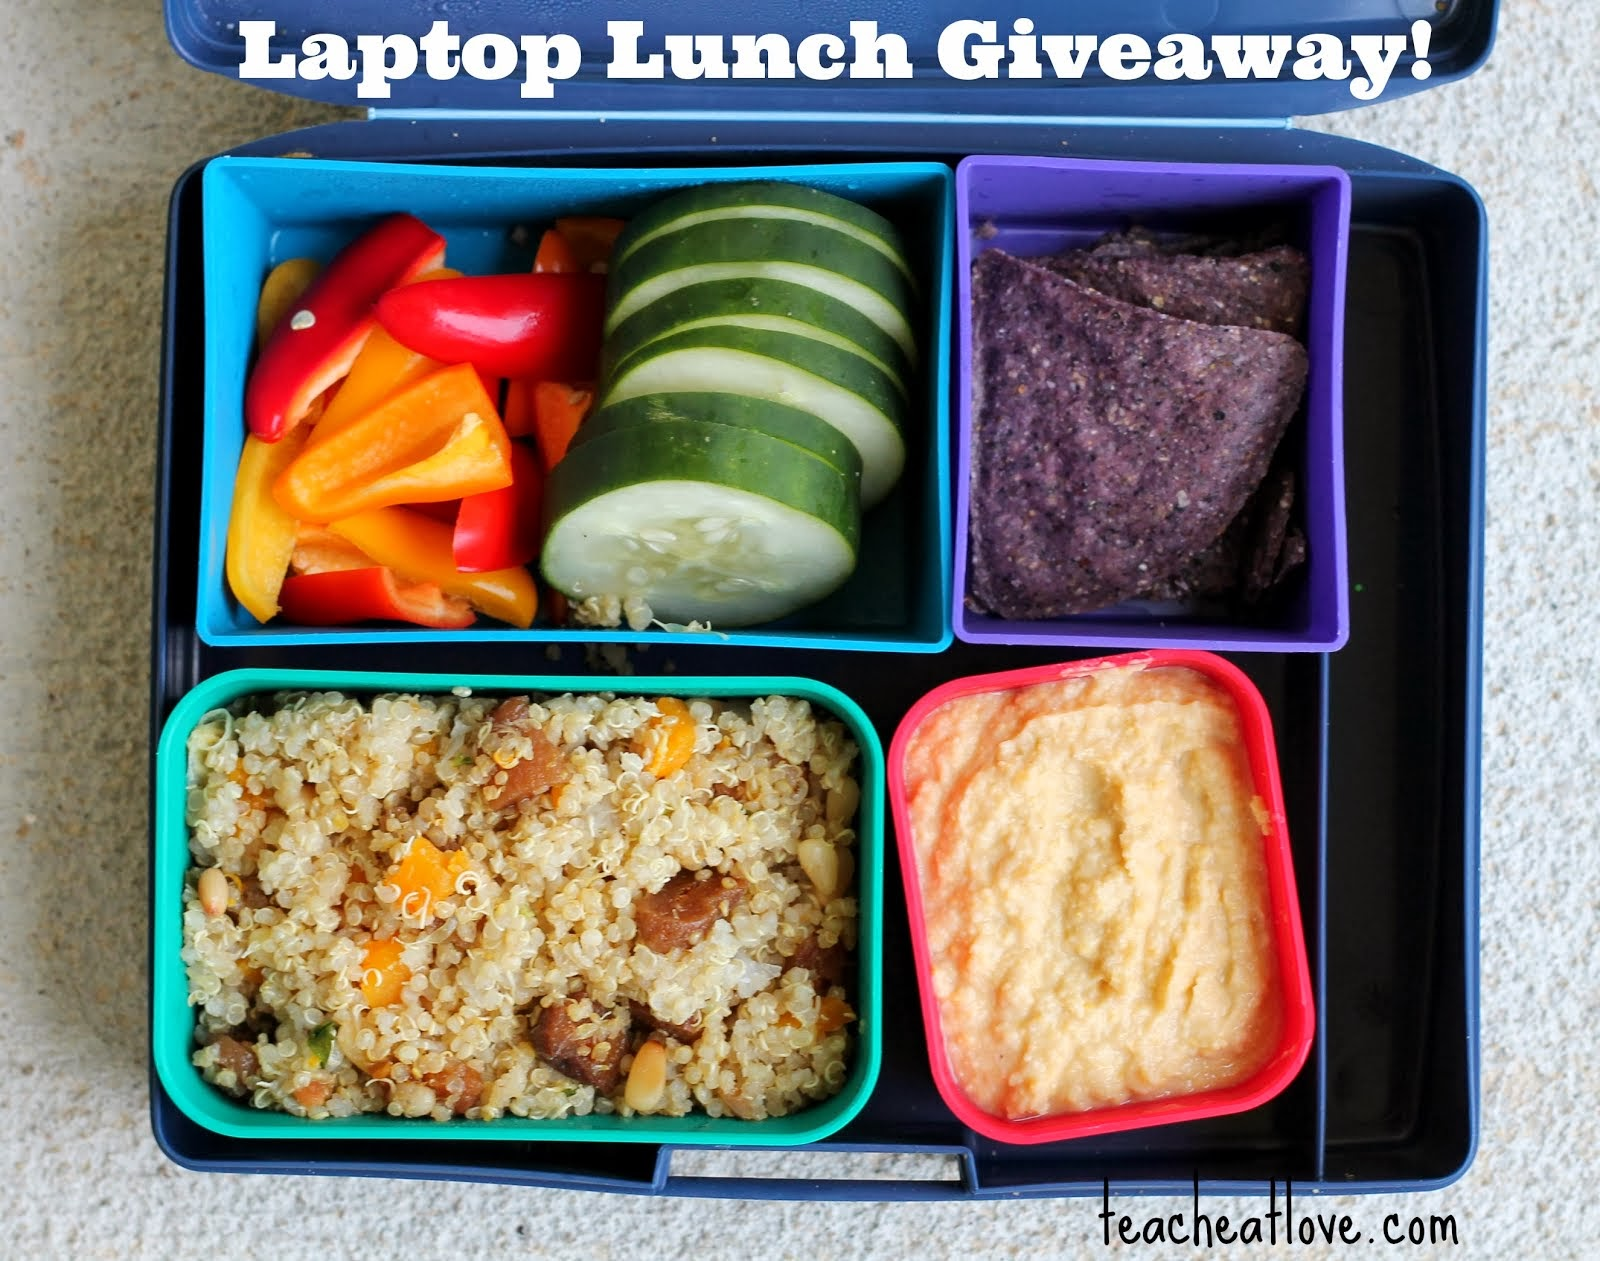 Laptop Lunches Giveaway!